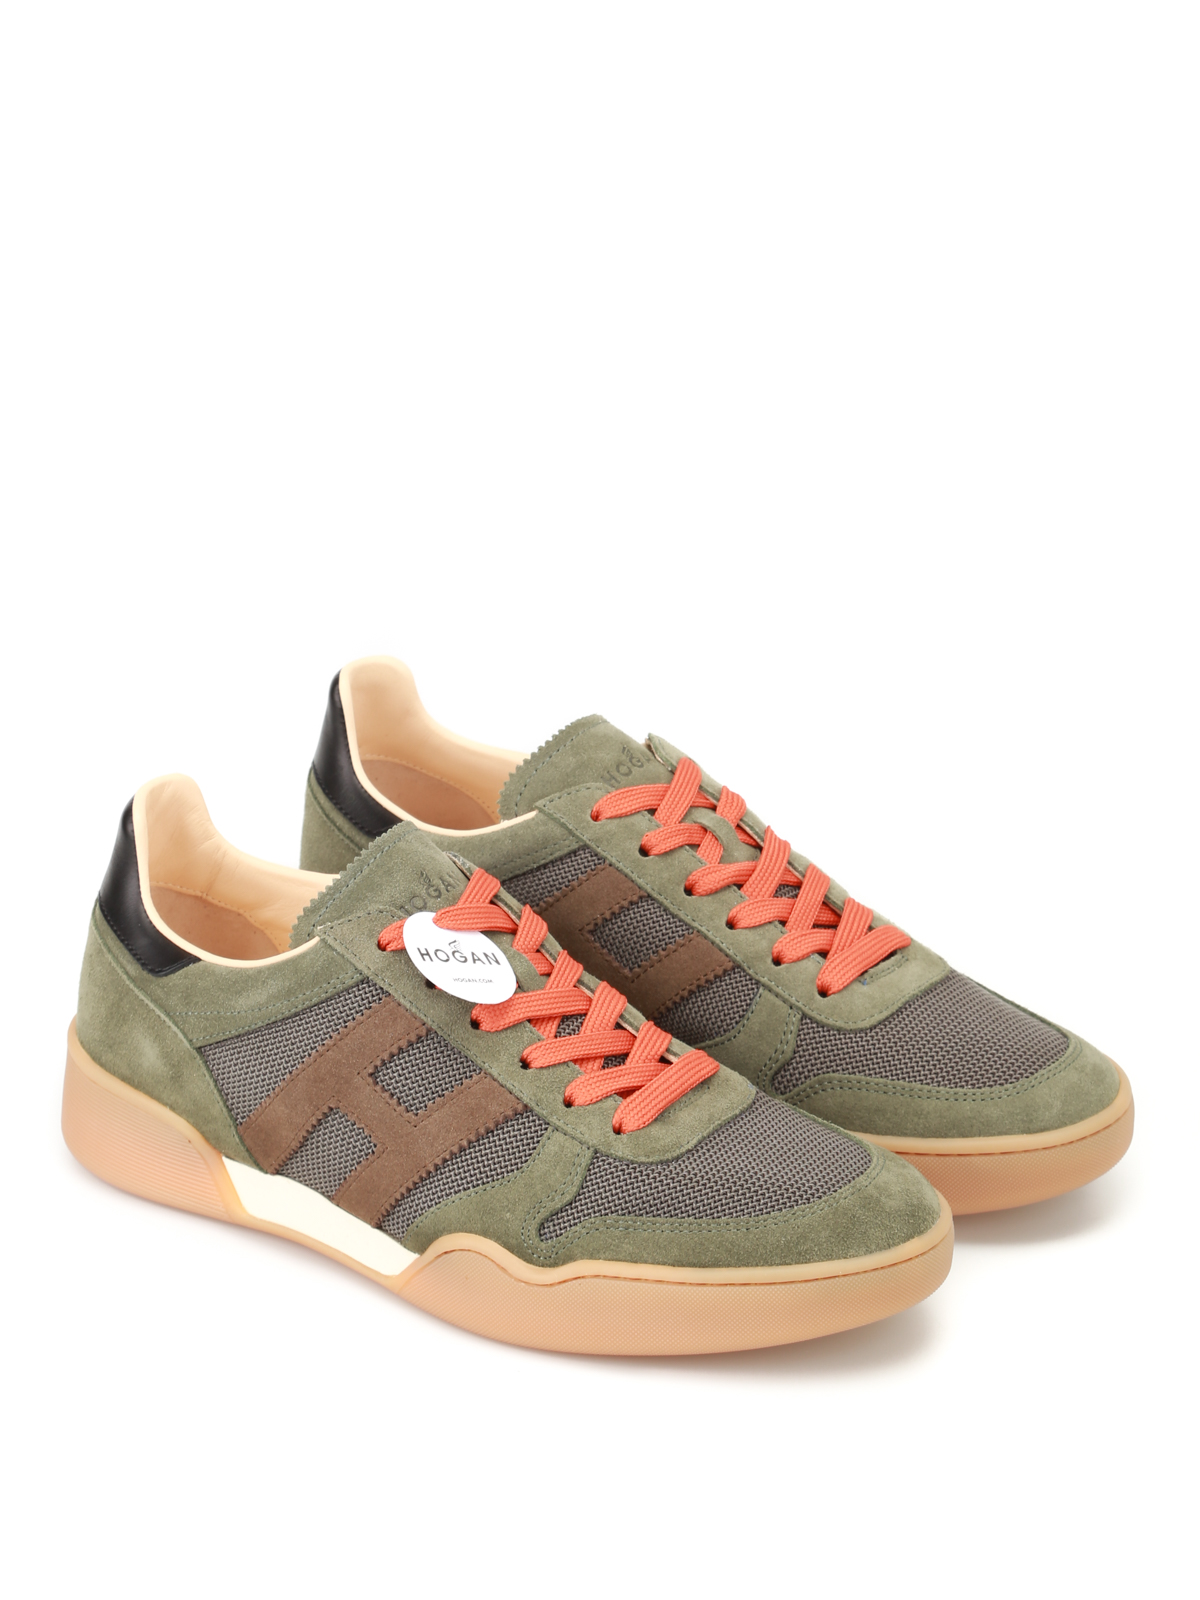 Hogan - H357 suede and fabric sneakers